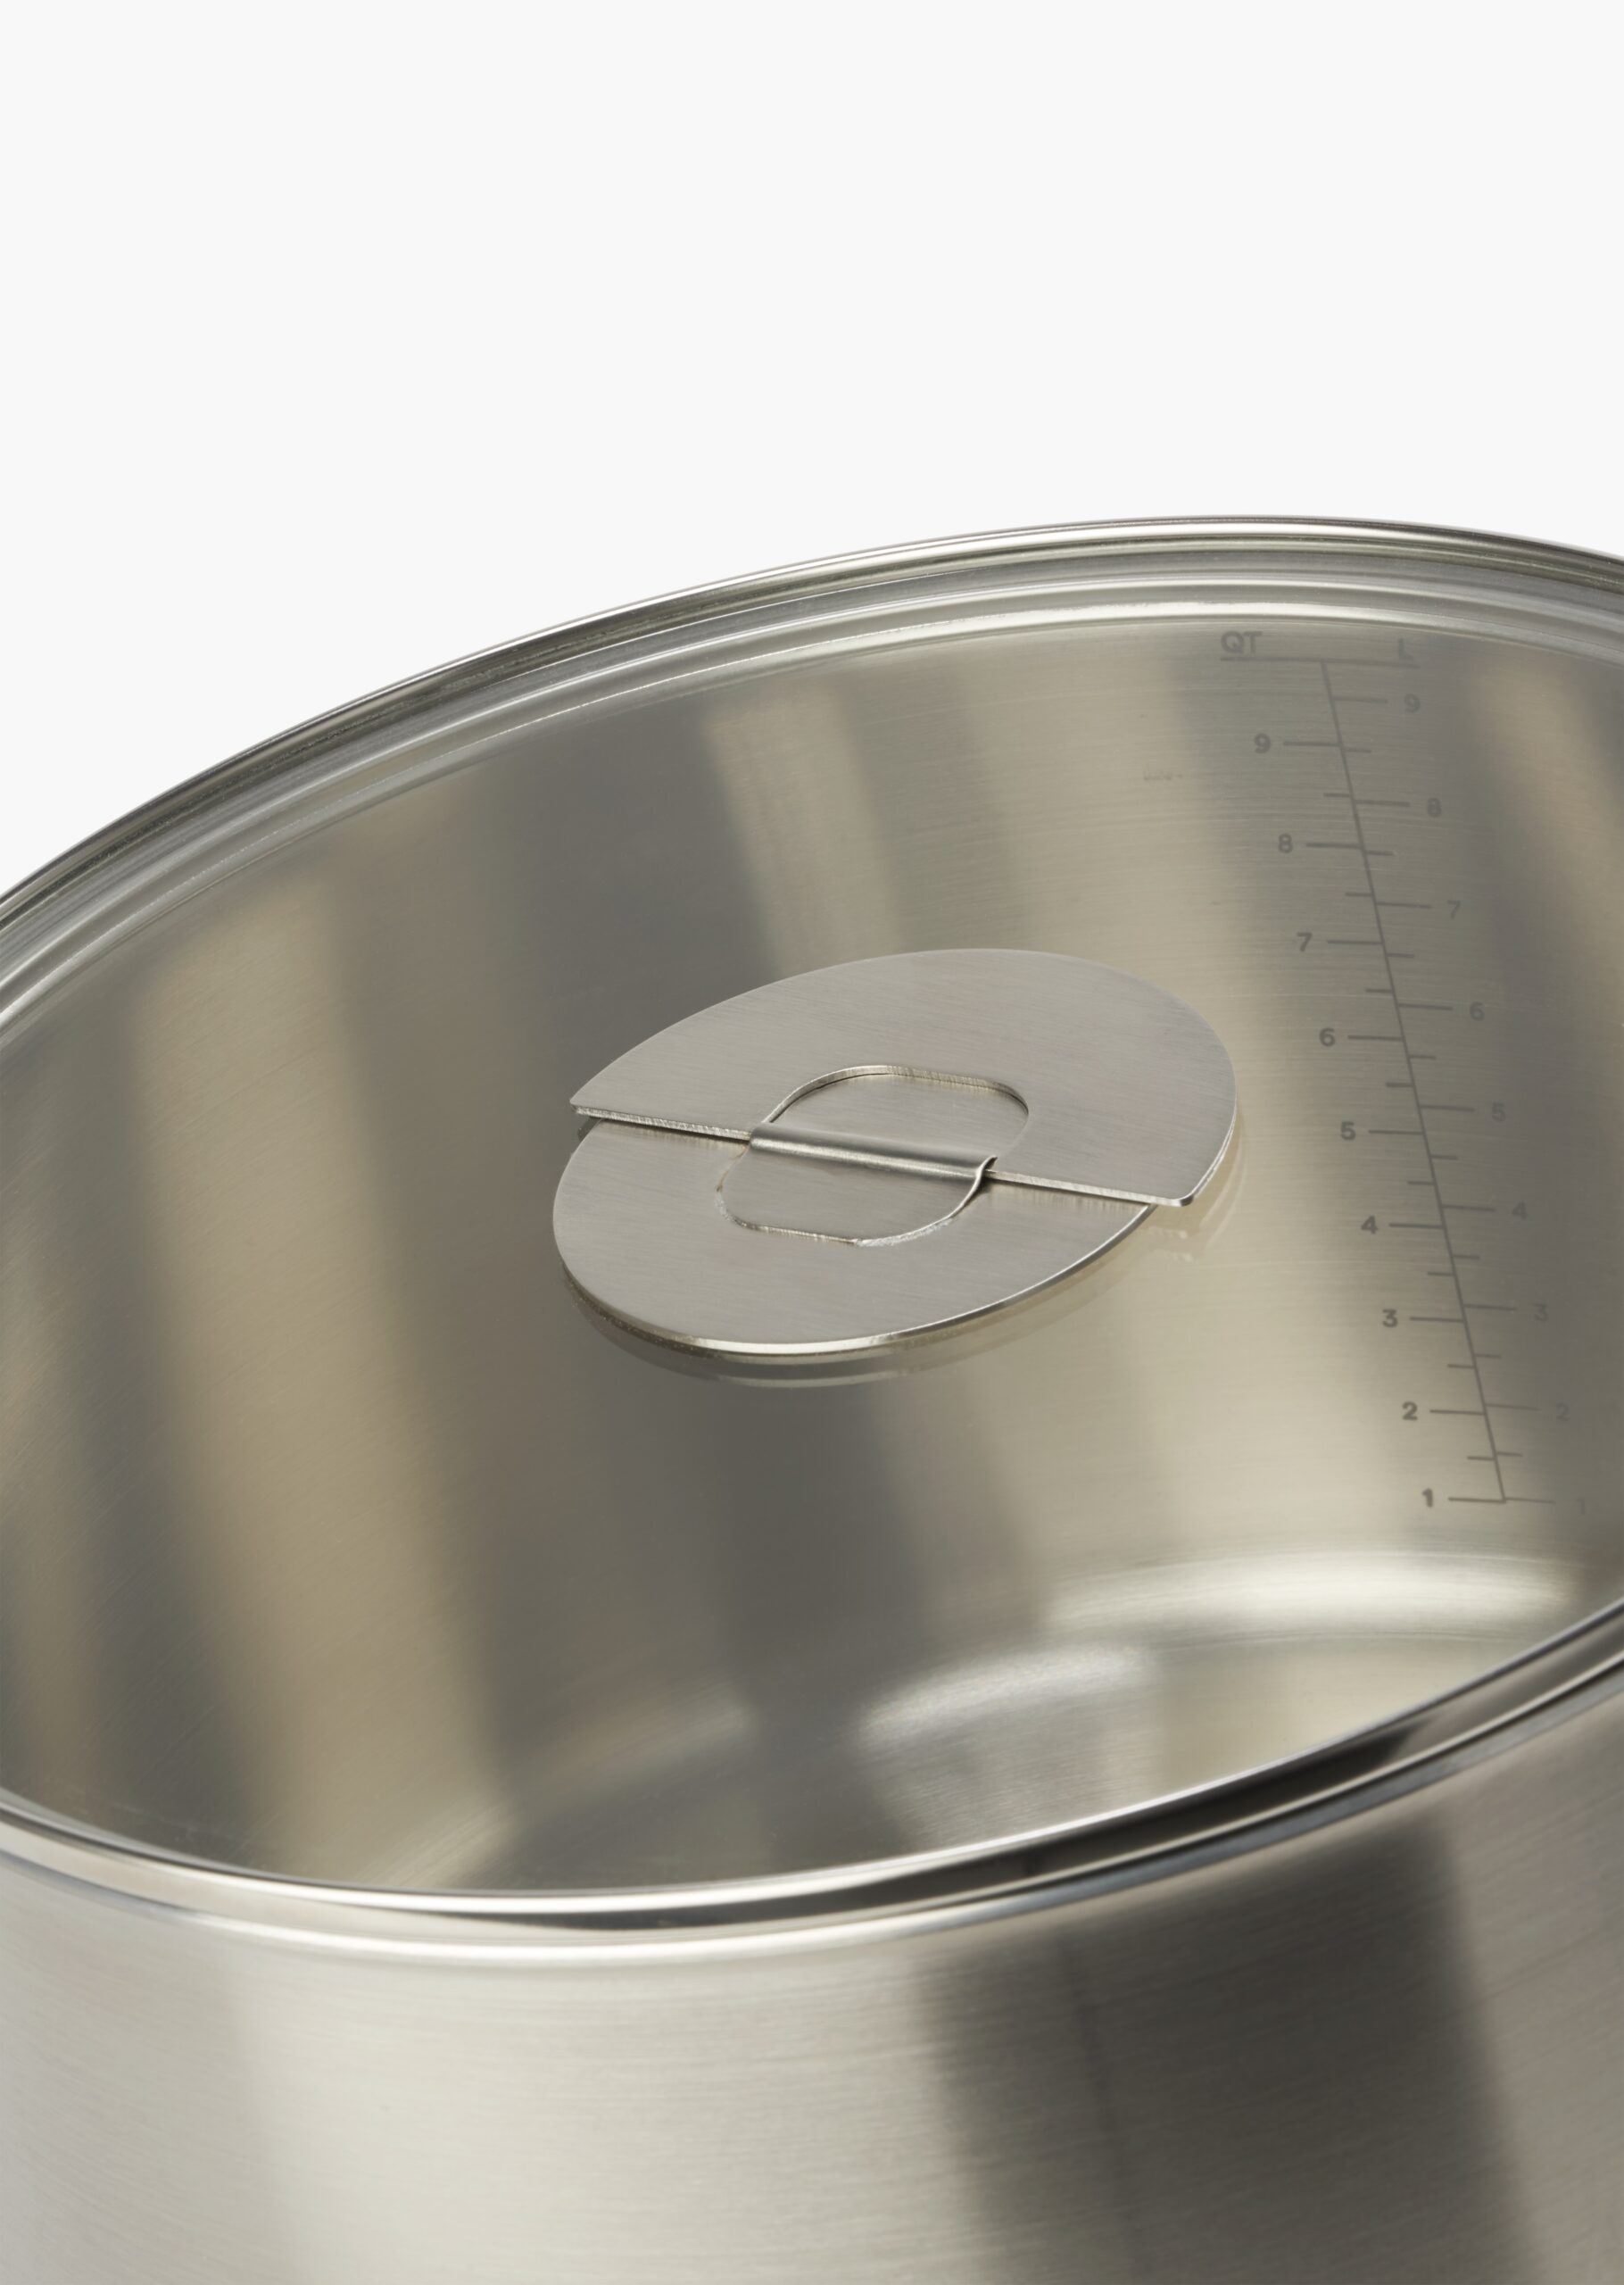 ENSEMBL Stackware Stainless Steel Fully Clad Cookware Metric Imperial Measurements